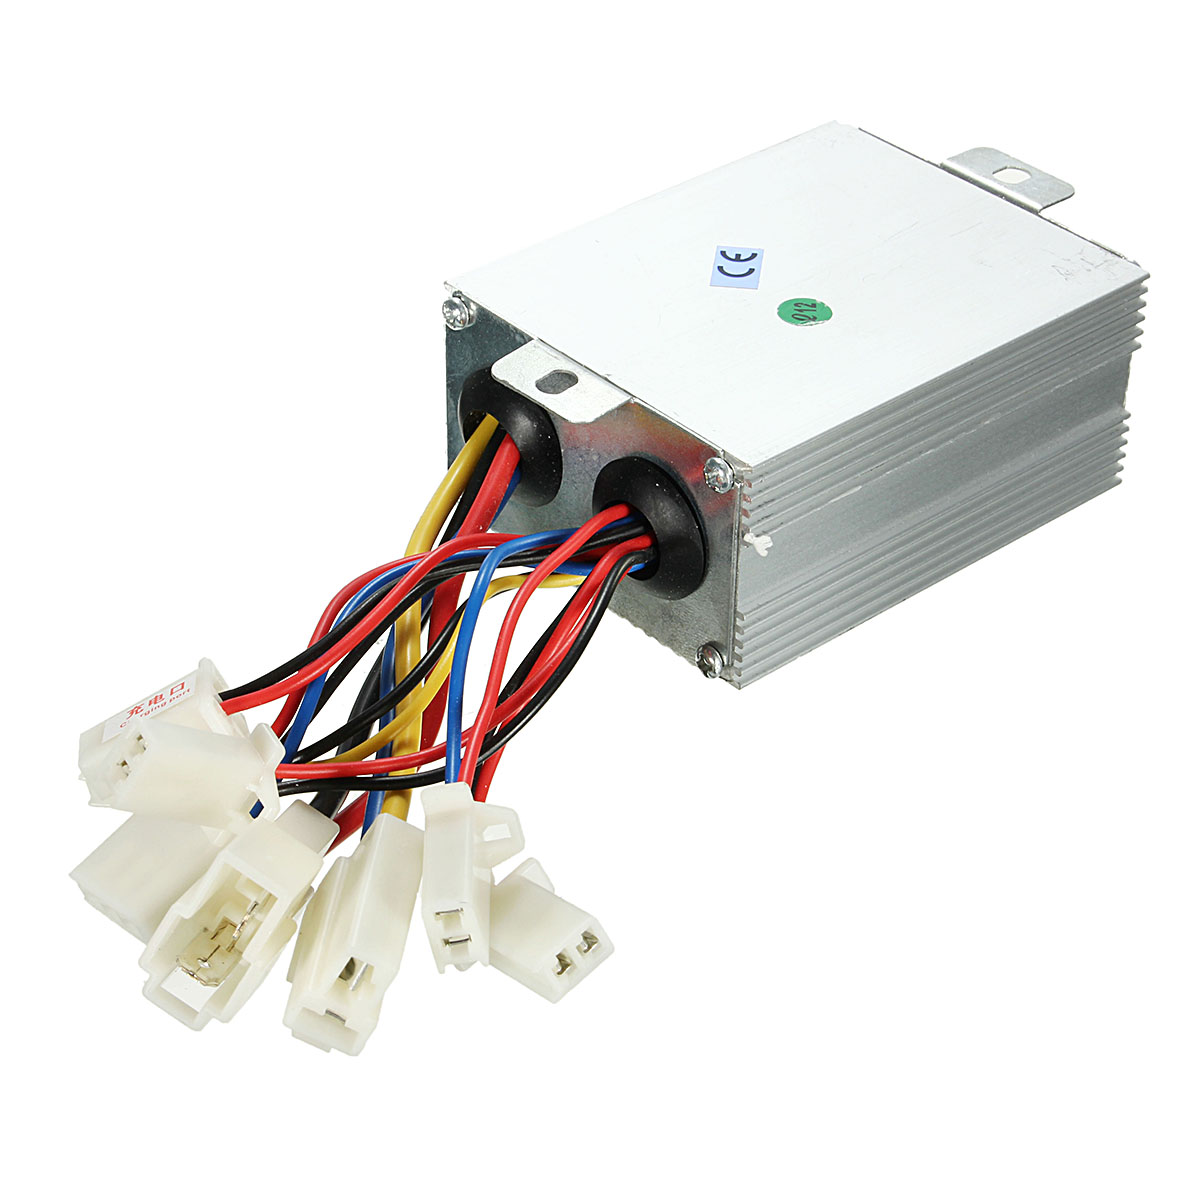 Dc 24v 500w Motor Brushless Motor Controller For Electric Bike Bicycle Scooter 11street